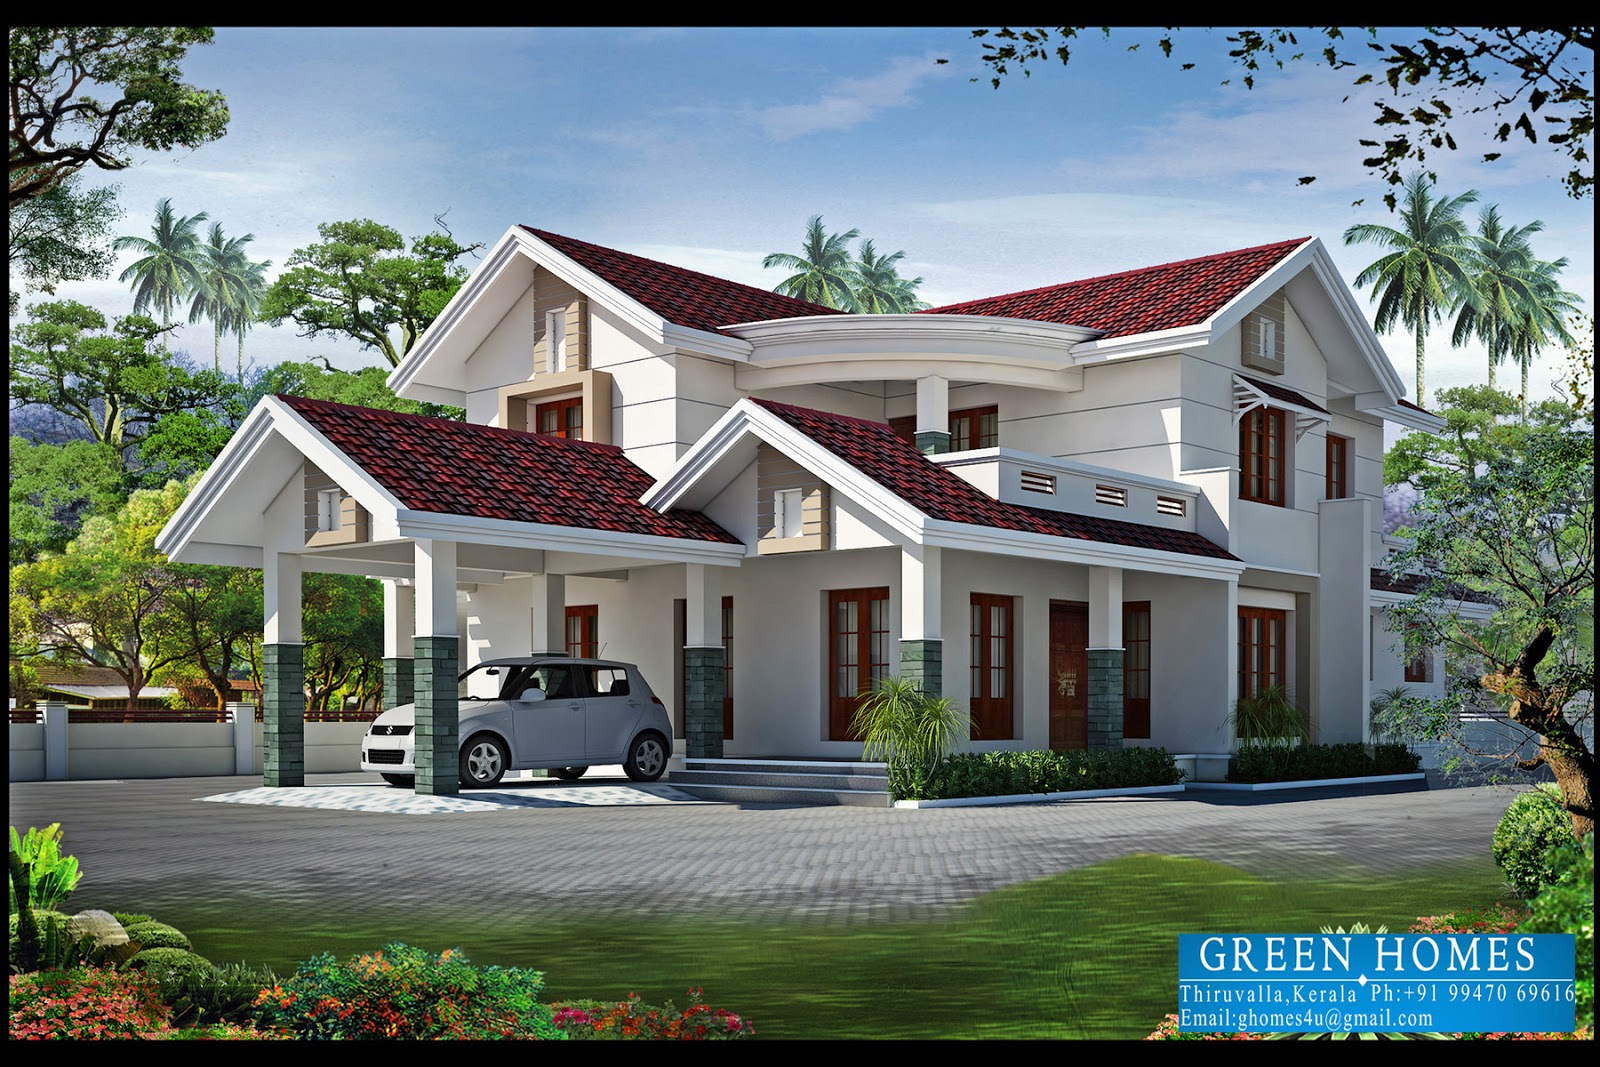 Green homes 4bhk kerala home design 2550 for New home designs